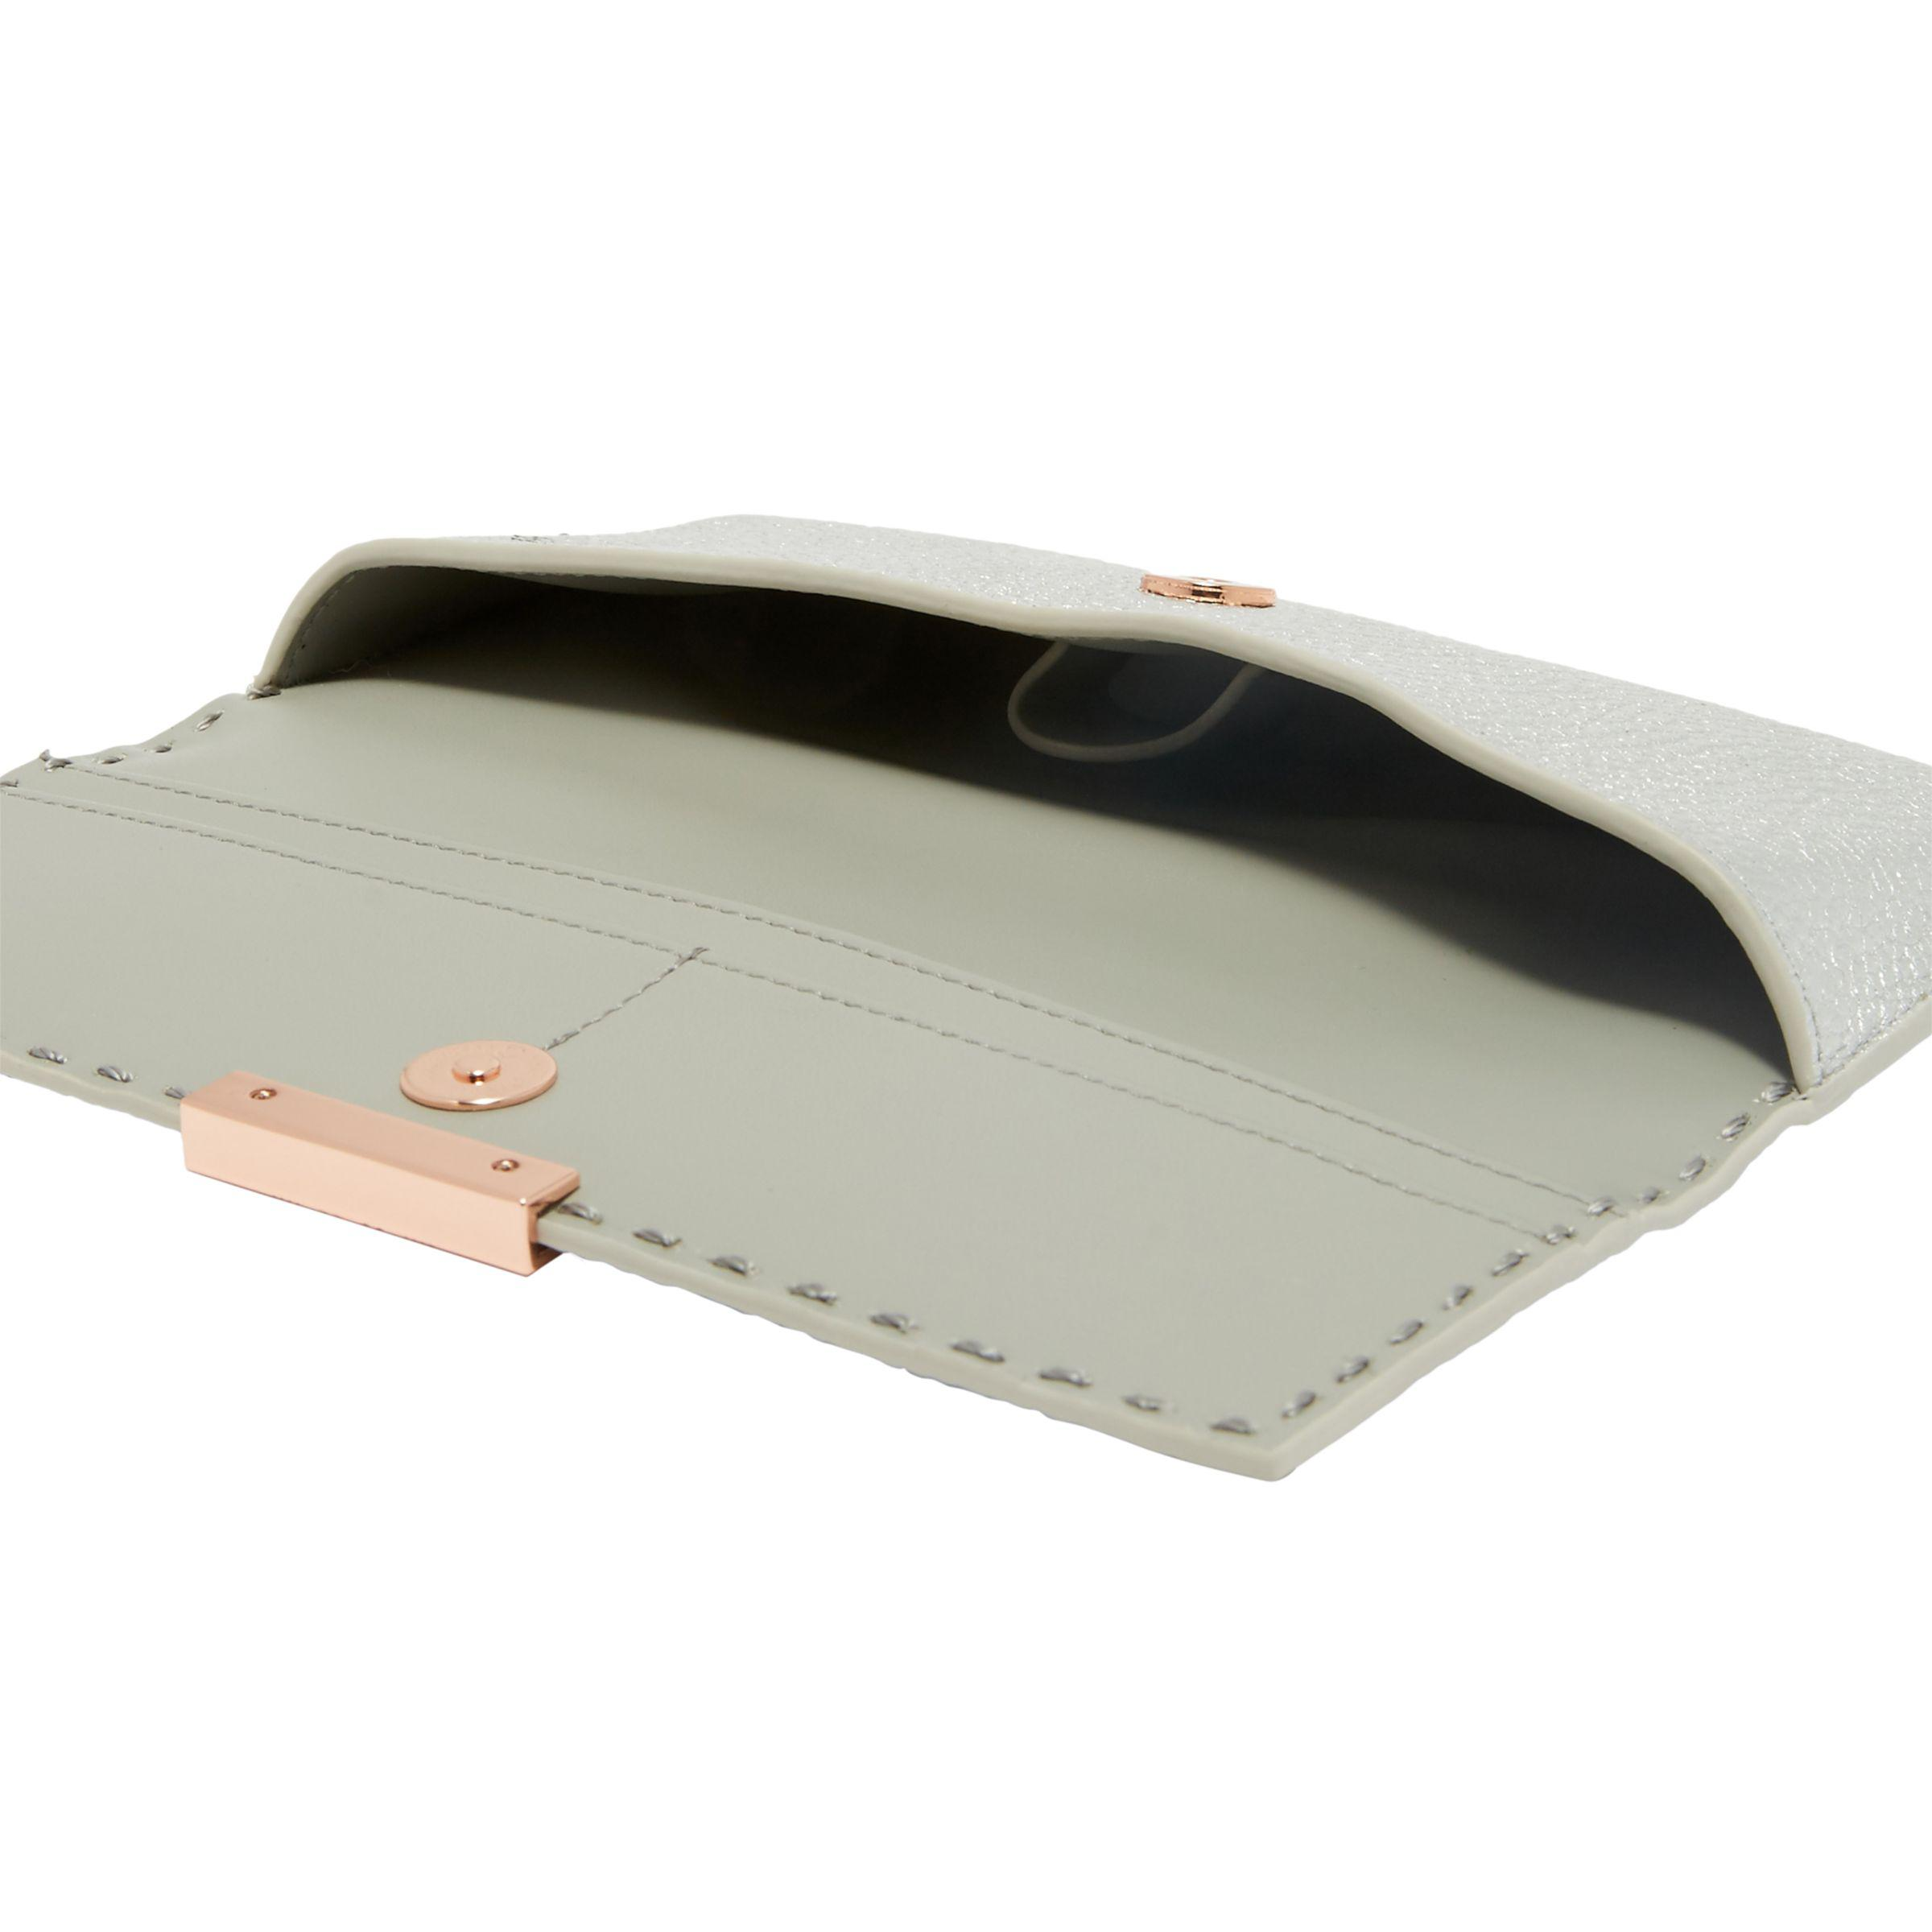 Ted Baker Iiona Leather Sunglasses Case in Silver (Metallic)